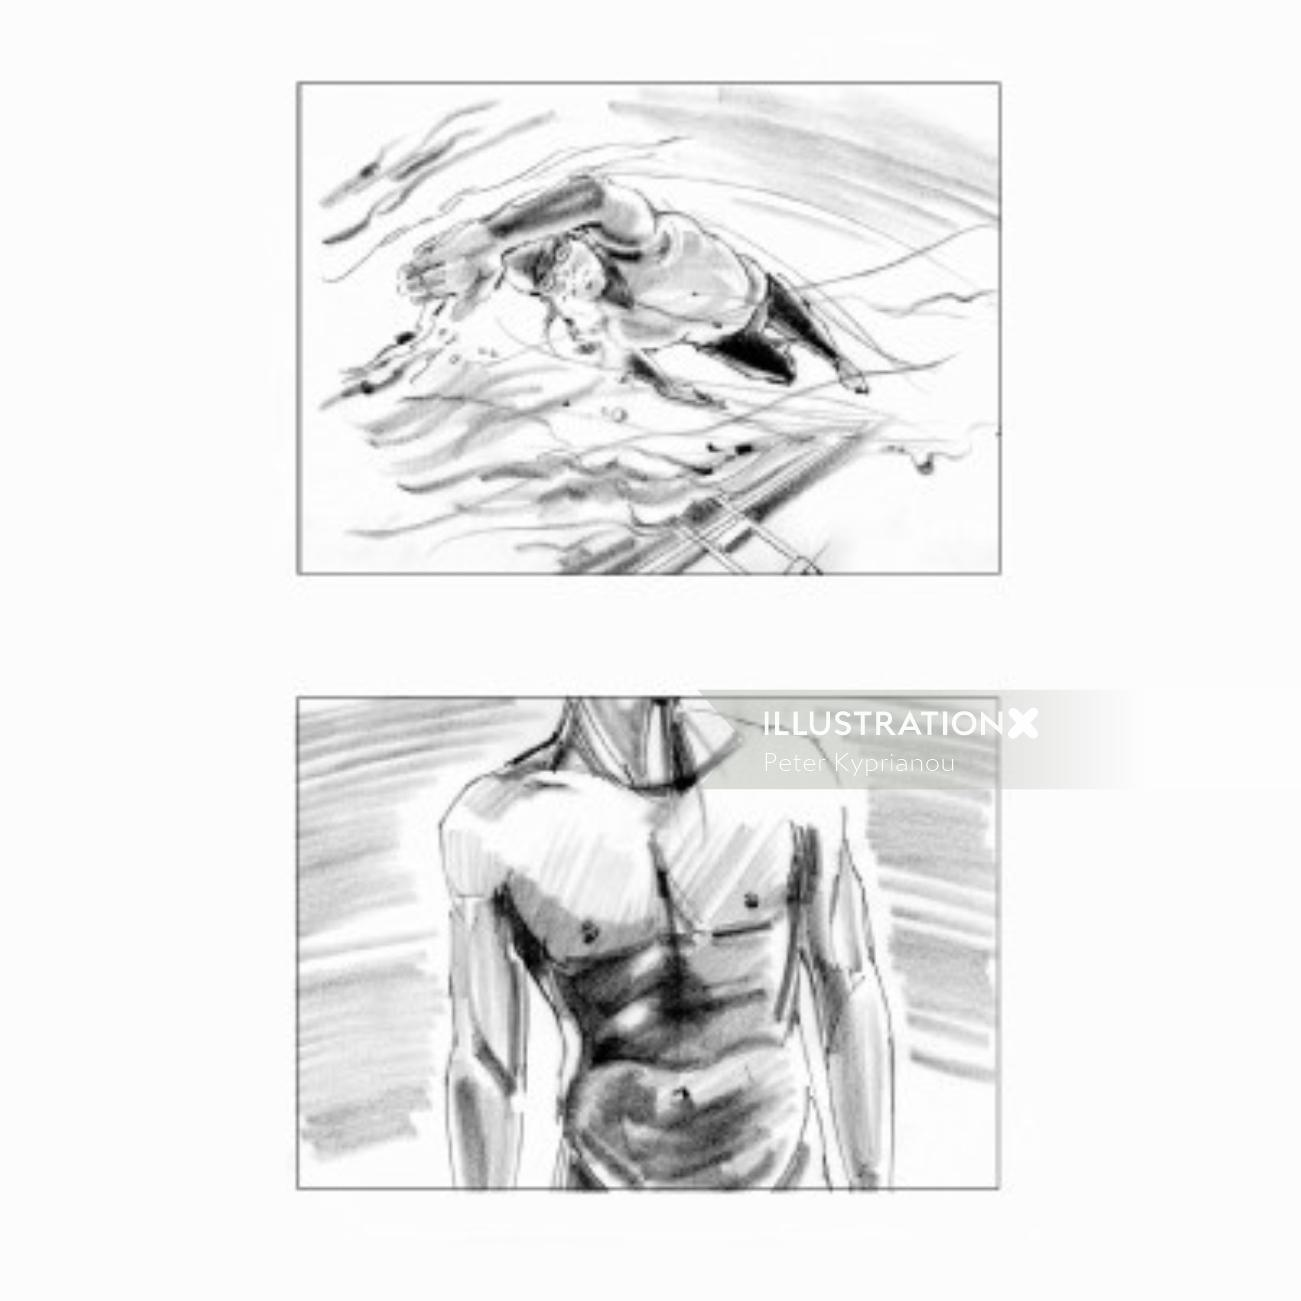 Pencil art infographic of a swimmer